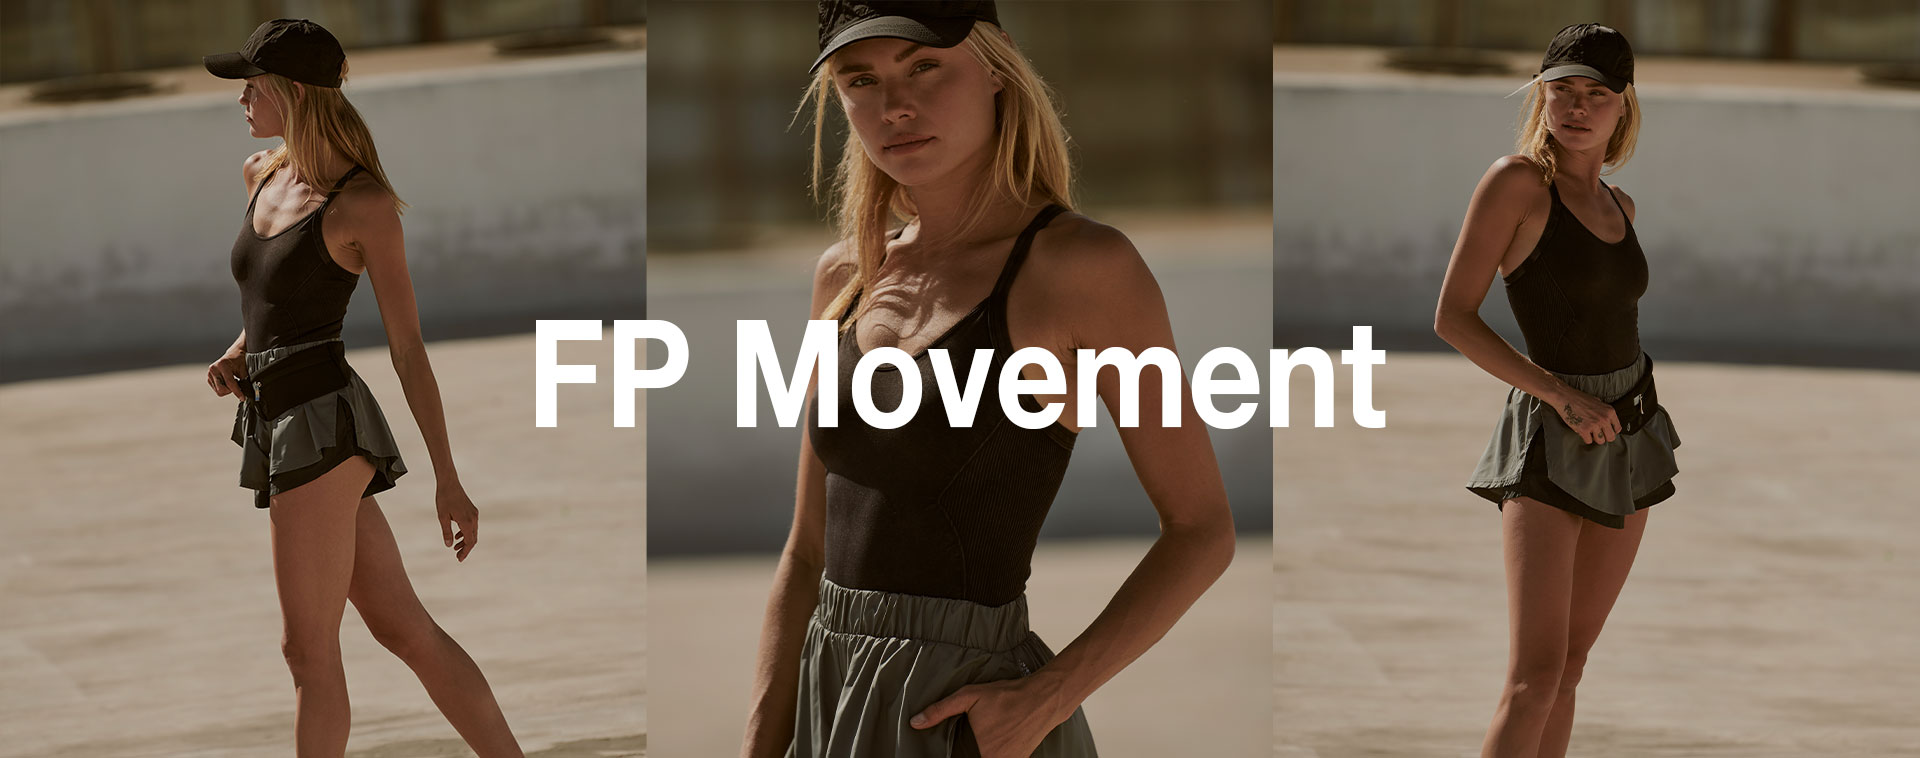 Mountain High Outfitters - FP Movement